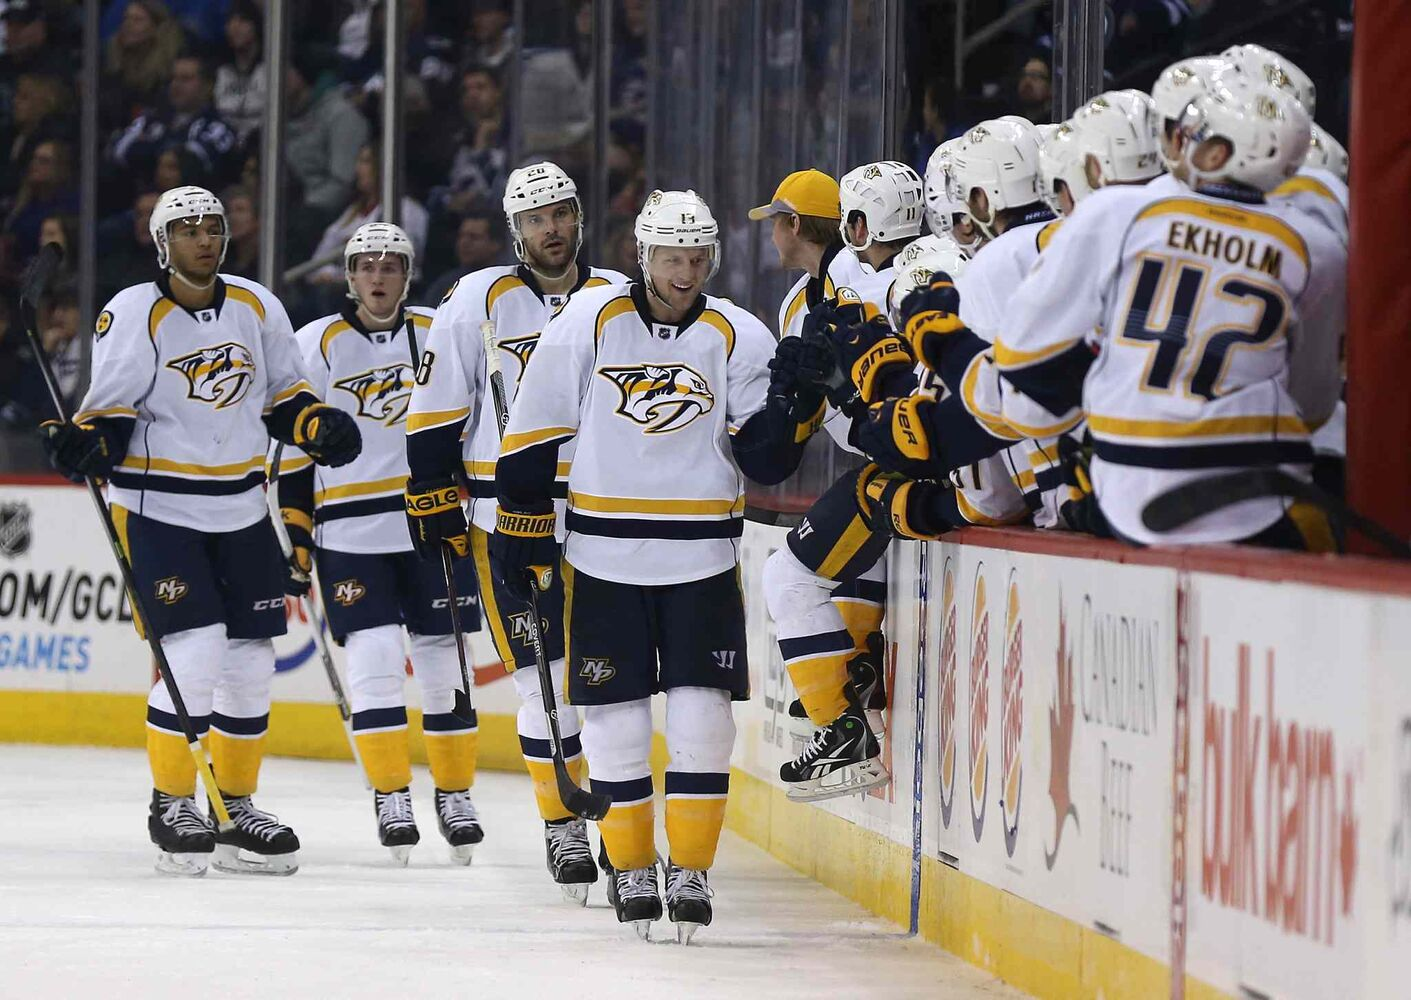 Nashville Predators players celebrate a second-period goal by Nick Spaling (13) against the Winnipeg Jets at the MTS Centre Tuesday. (Trevor Hagan / The Canadian Press)